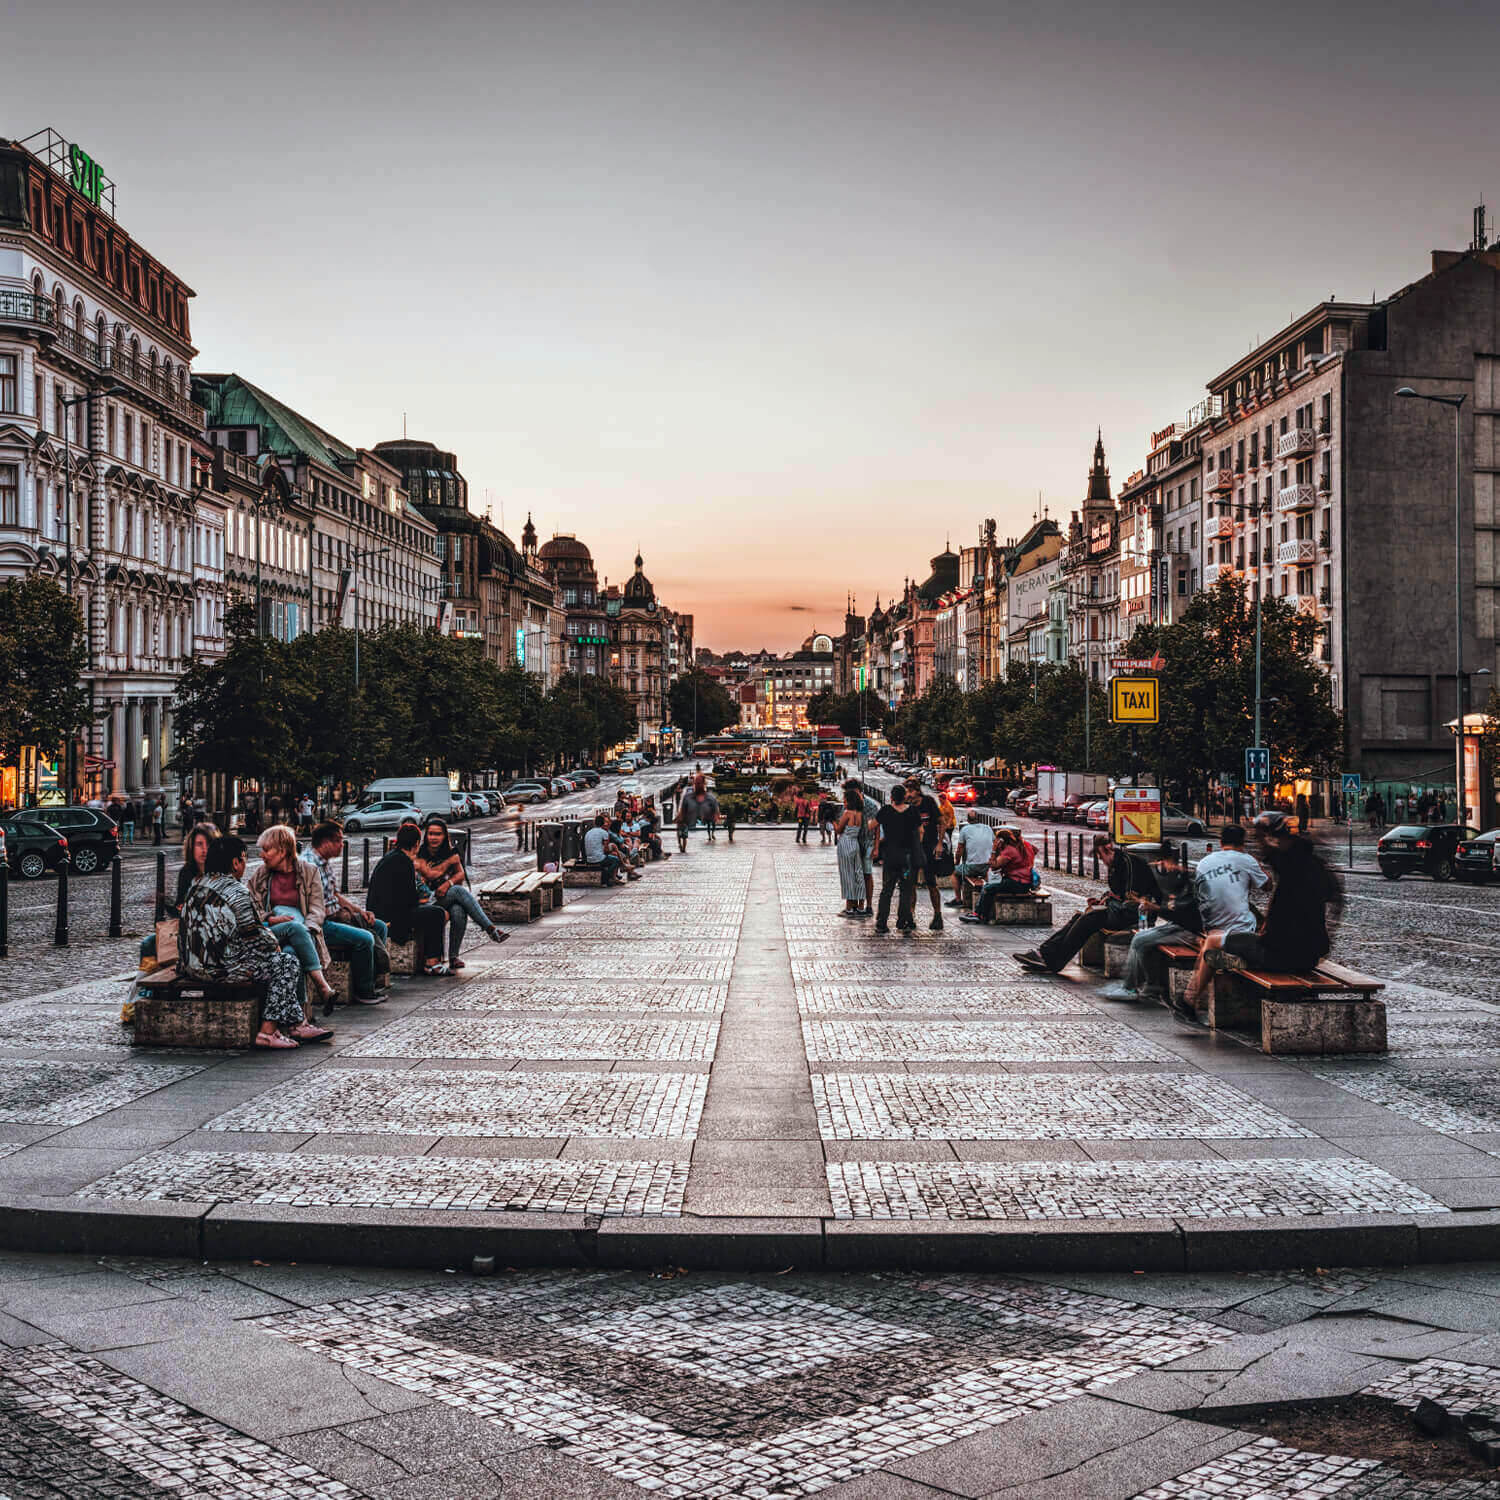 Photo of a city square full of people sitting on benches